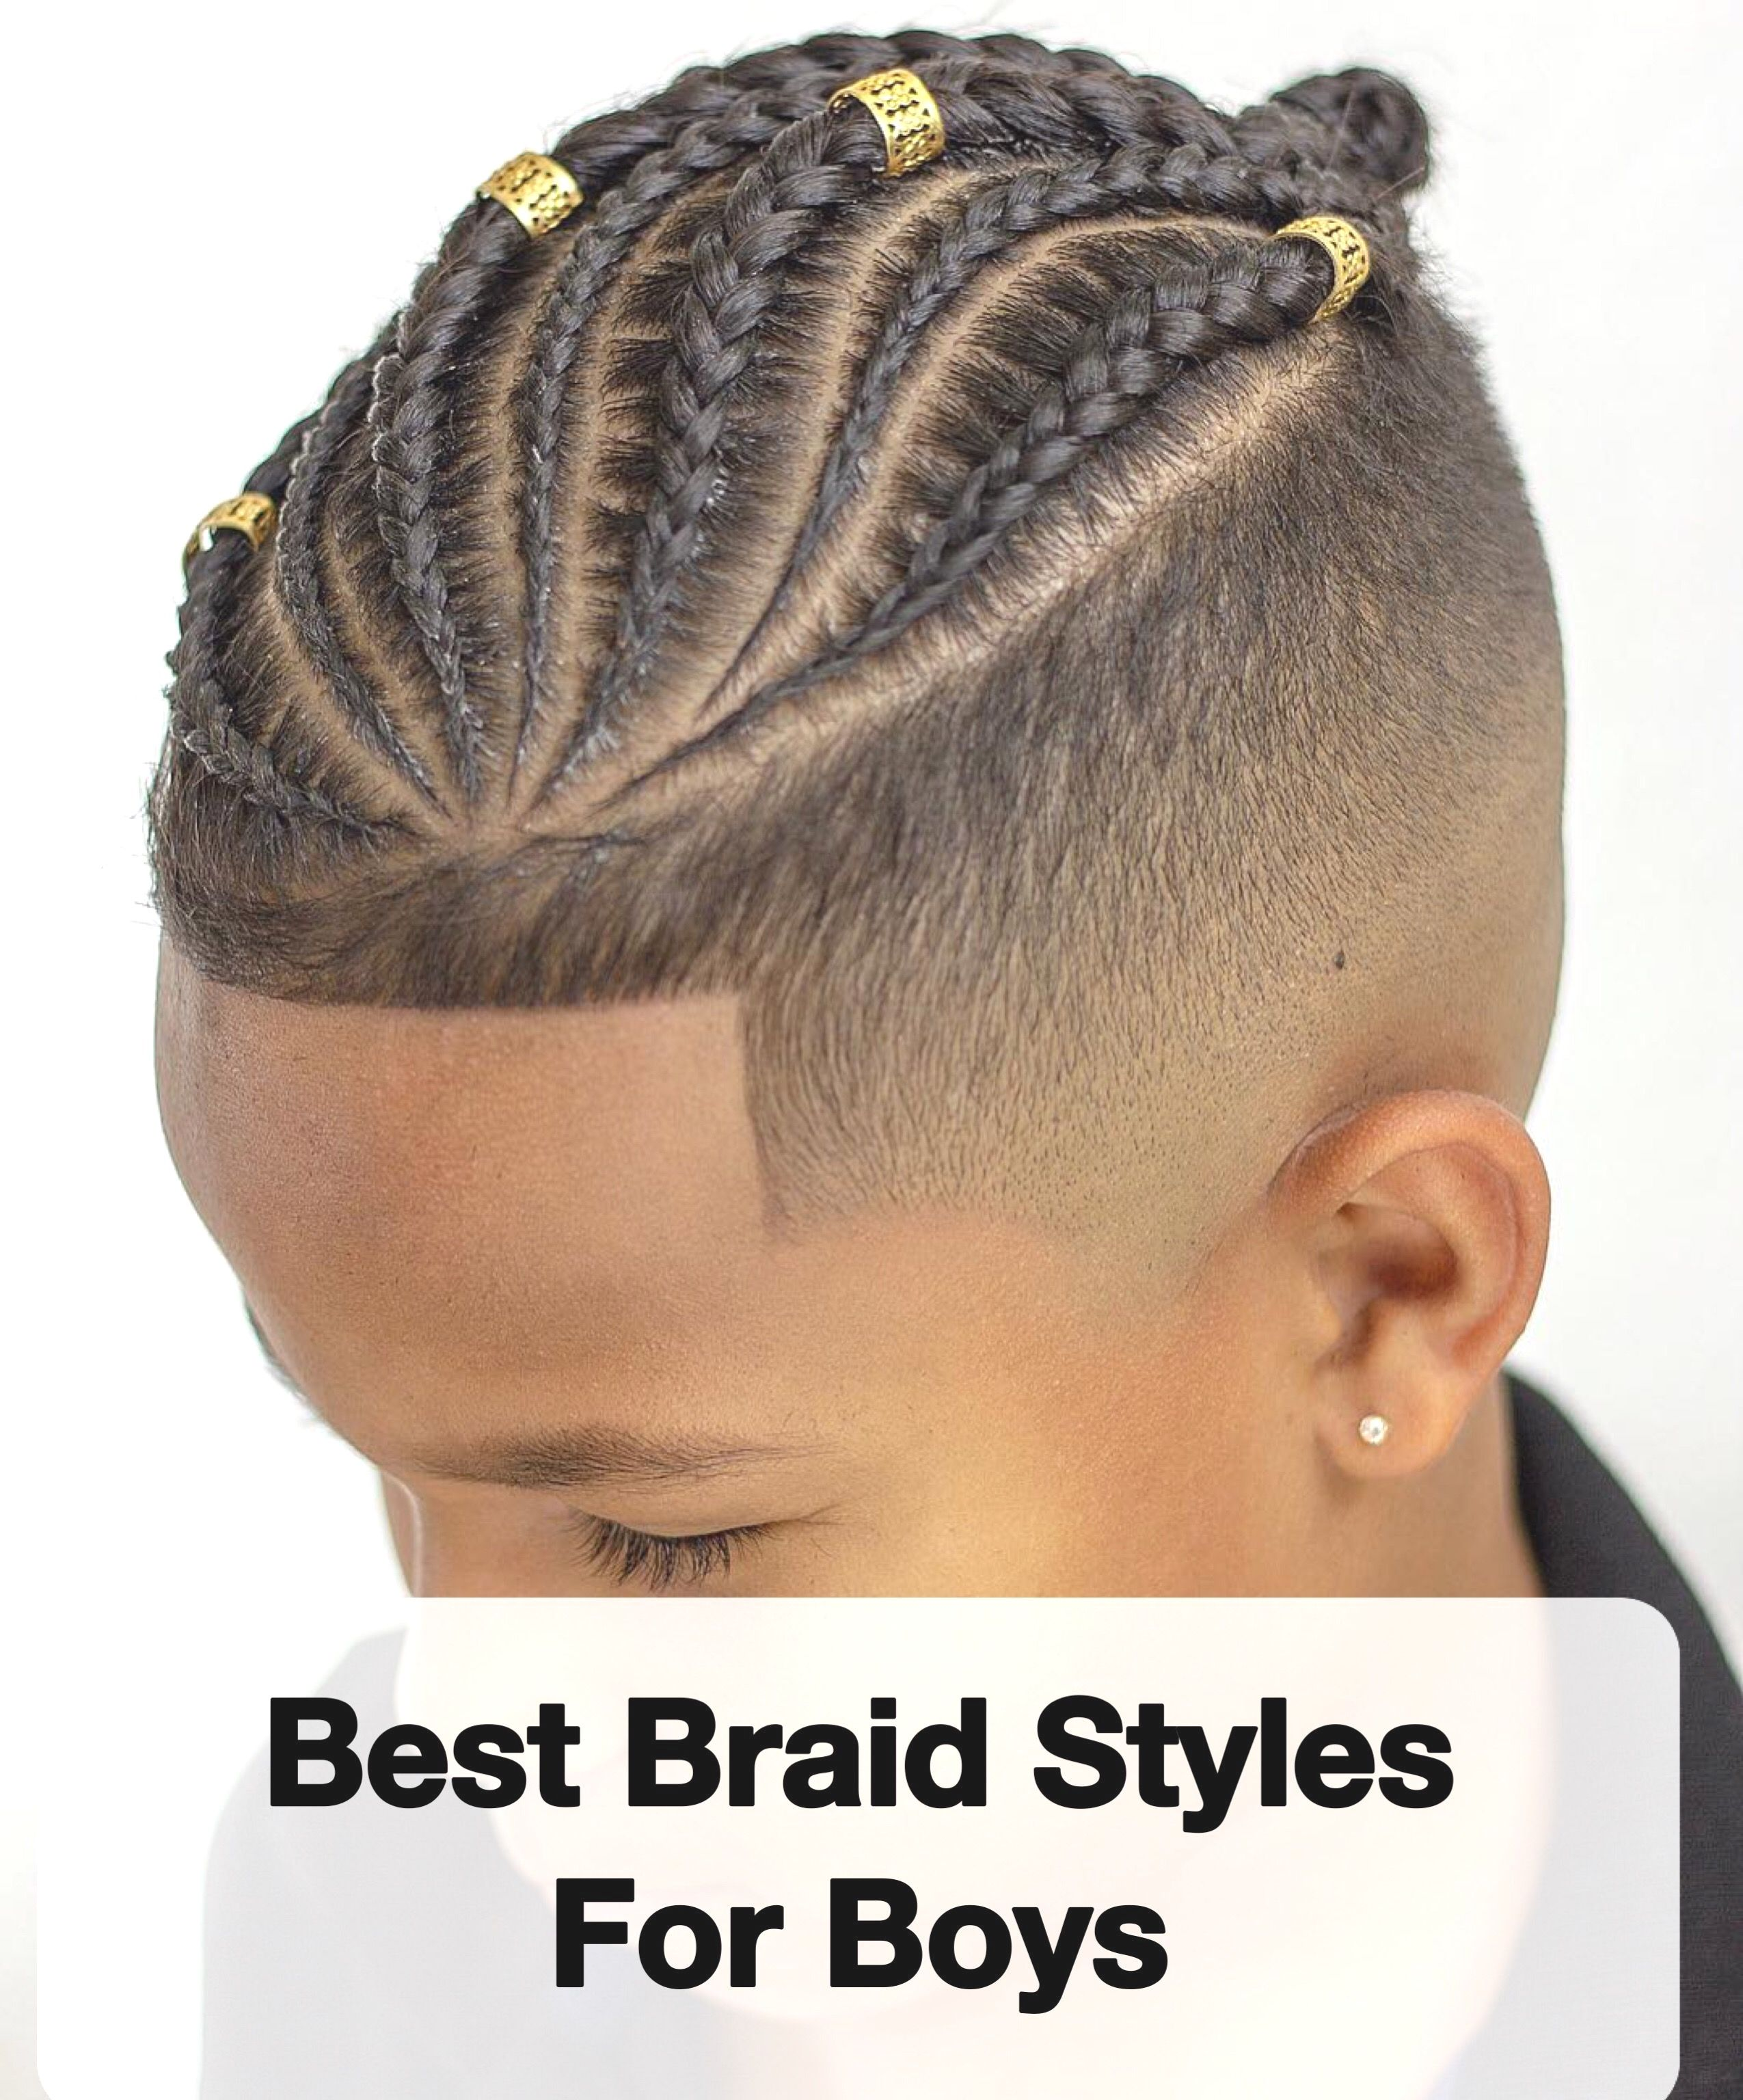 Cornrow Hairstyles For Boys Braided Hairstyles For Boys With